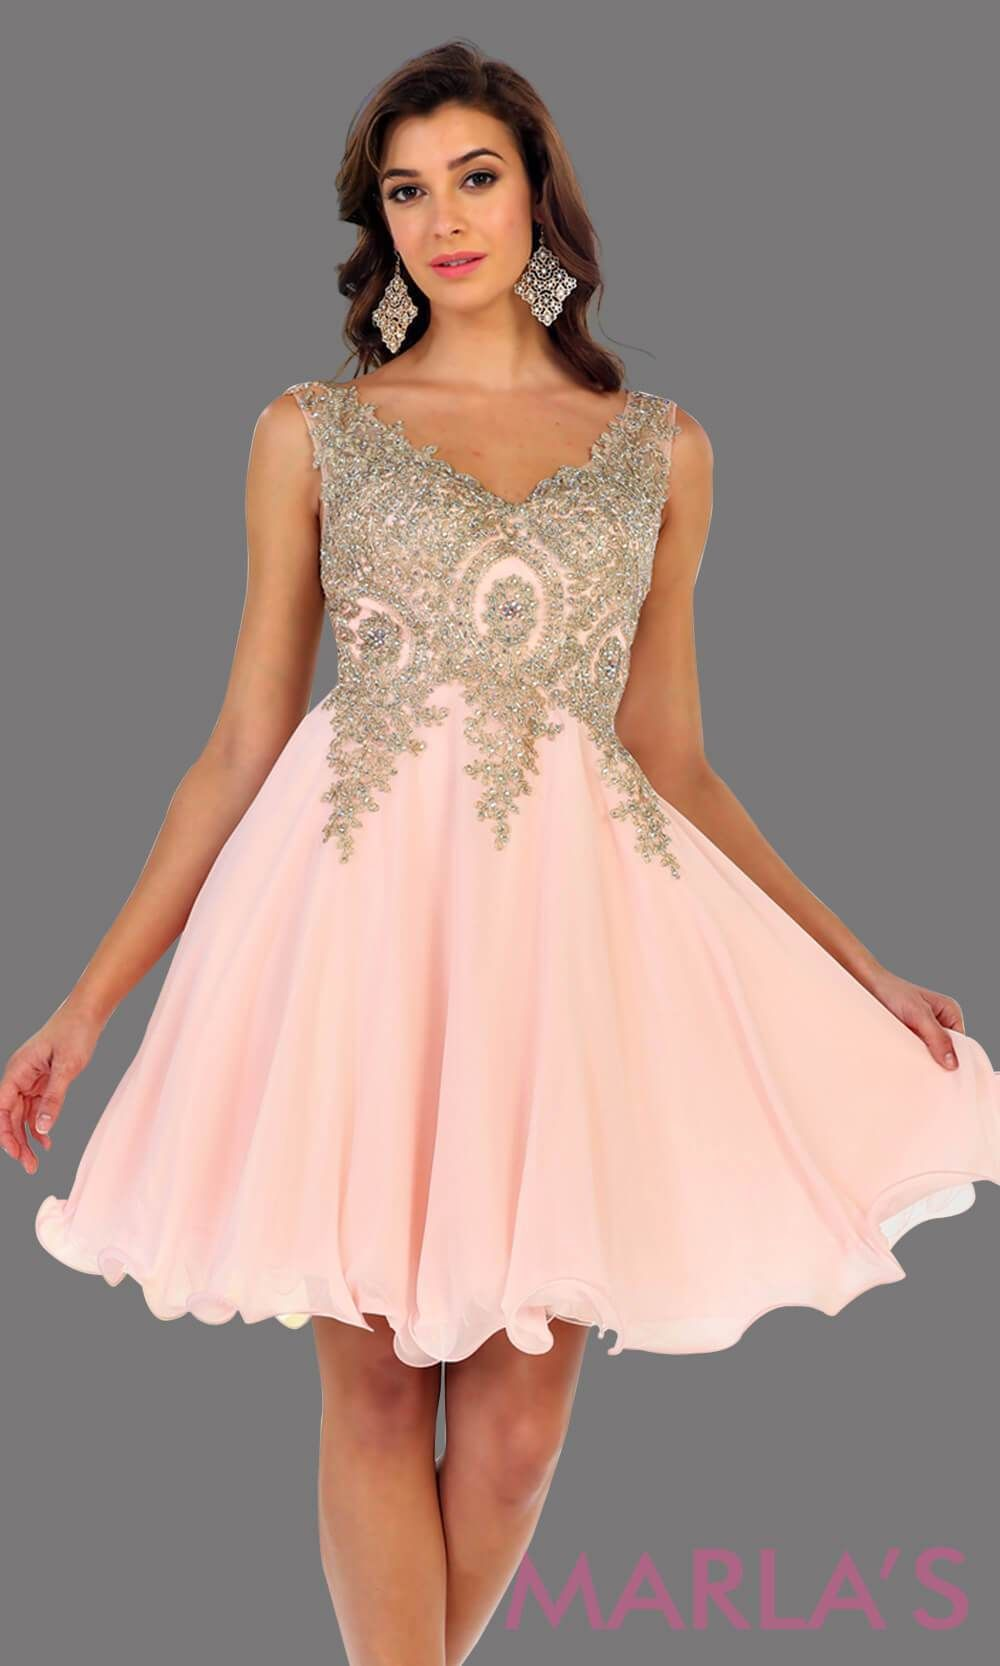 c98523ccd96 Short flowy blush dress with gold lace detail on the bodice. This is a  perfect pink grade 8 graduation dress